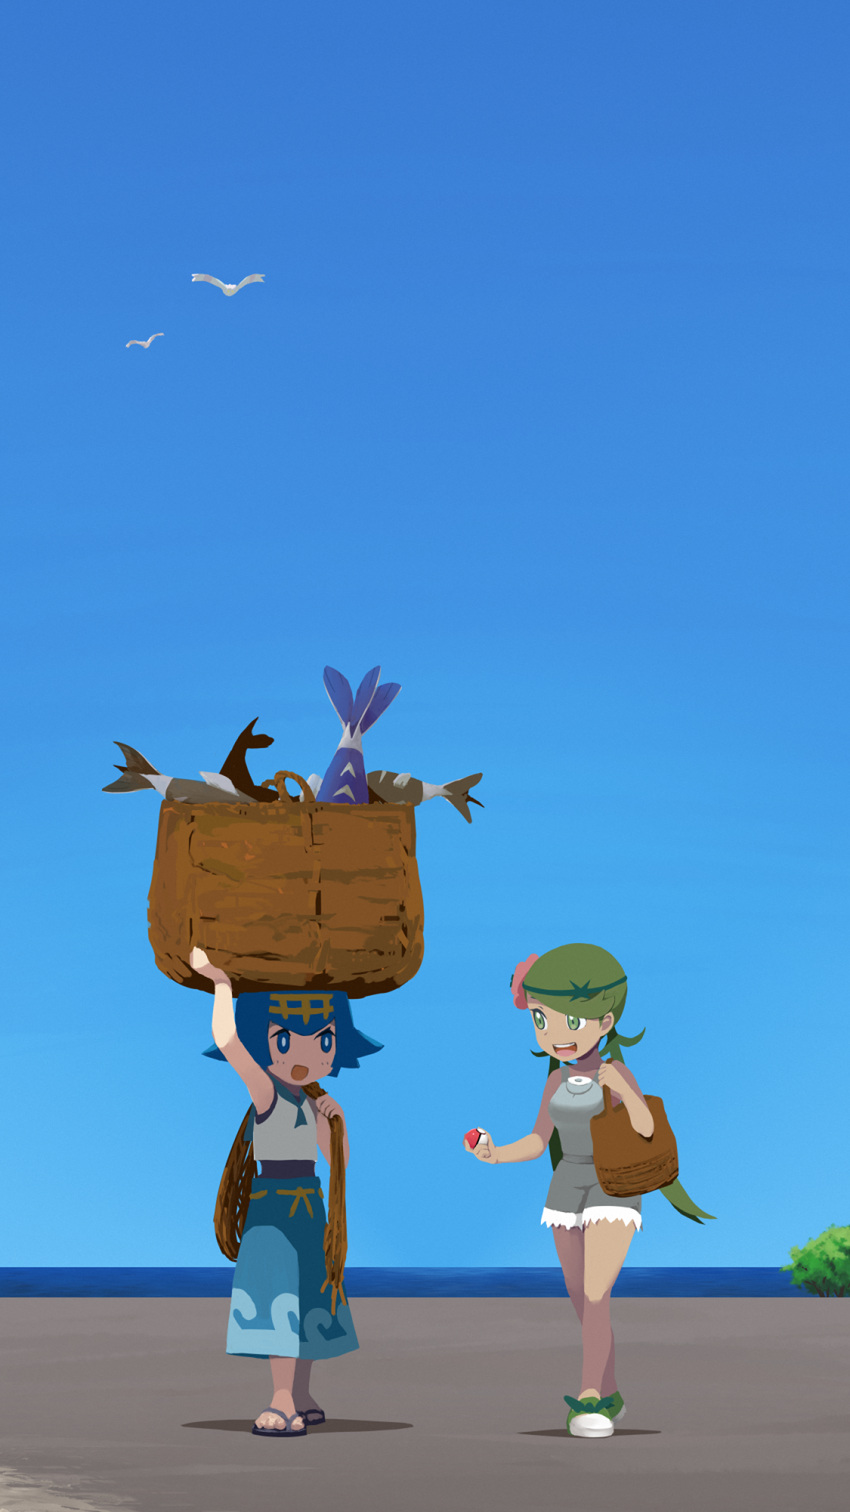 2girls :d arm_up bare_arms basket bird blue_eyes blue_hair blue_pants blue_sailor_collar bright_pupils brown_bag commentary day fish flower green_eyes green_footwear green_hair grey_overalls hair_flower hair_ornament hairband highres holding holding_poke_ball lana_(pokemon) long_hair mallow_(pokemon) multiple_girls no_sclera open_mouth outdoors overalls pants pink_flower poke_ball poke_ball_(basic) pokemon pokemon_(game) pokemon_sm rope sailor_collar sandals shirt shoes short_hair sky sleeveless sleeveless_shirt smile squid_neetommy standing toes twintails white_pupils white_shirt yellow_hairband